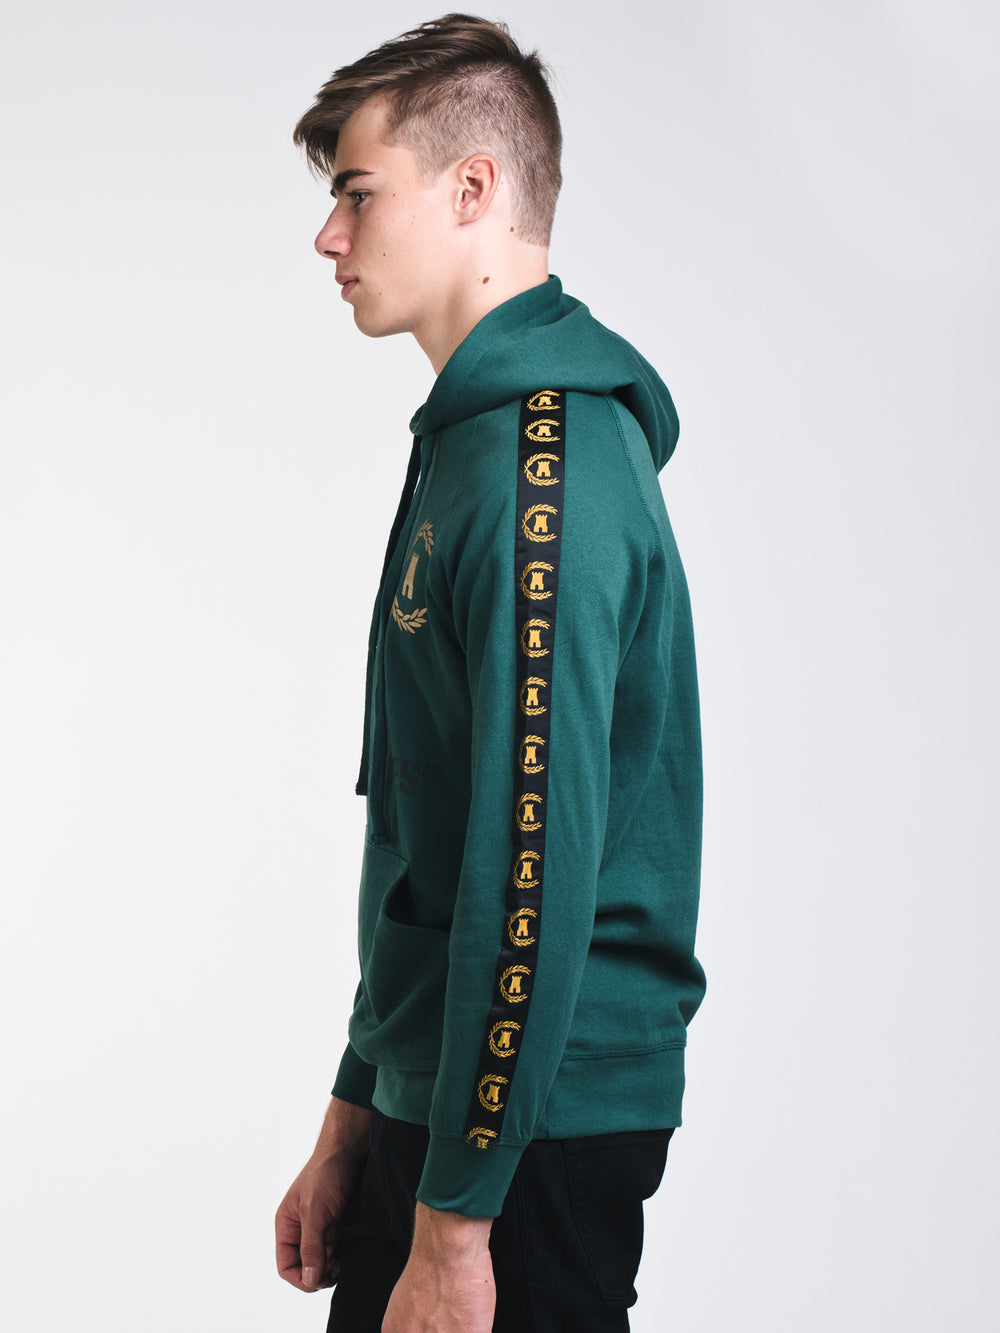 MENS CORONA TAPED PULLOVER HOODIE- GREEN